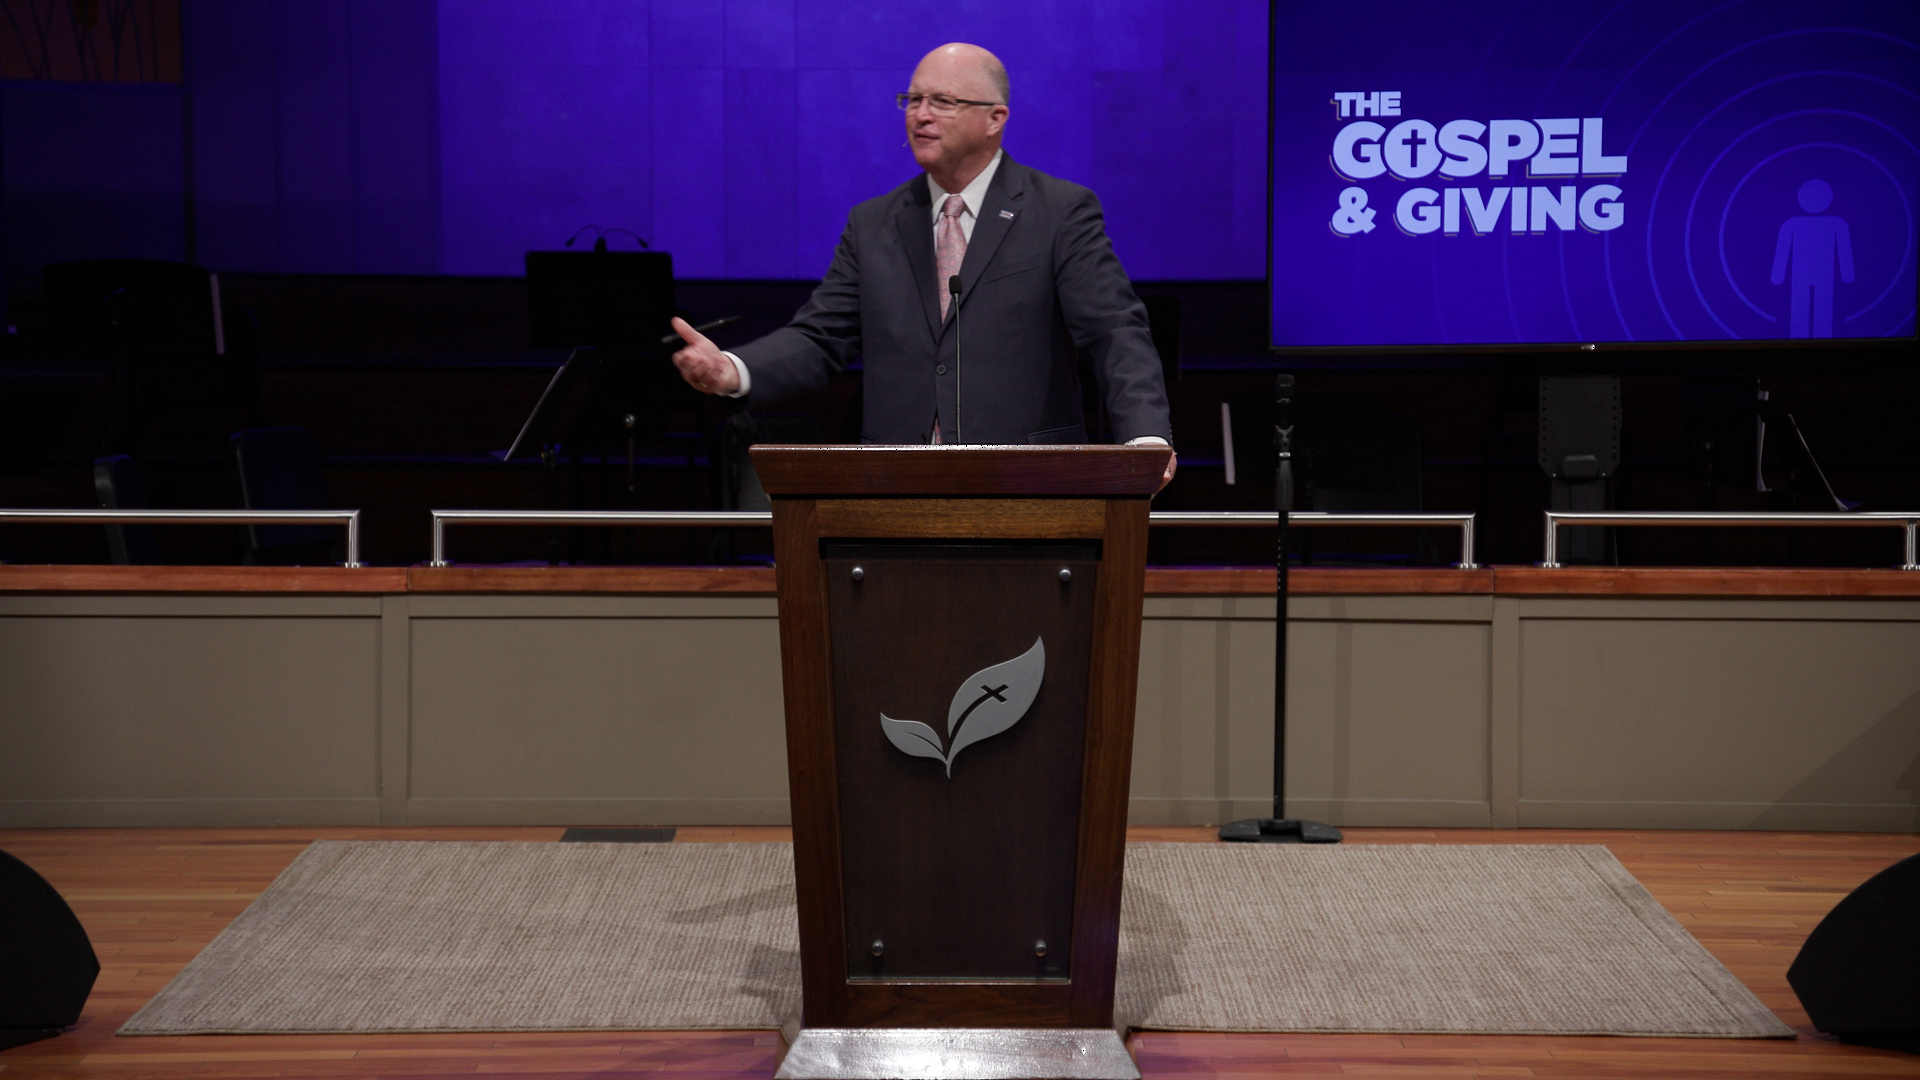 Pastor Paul Chappell: The Gospel and Giving